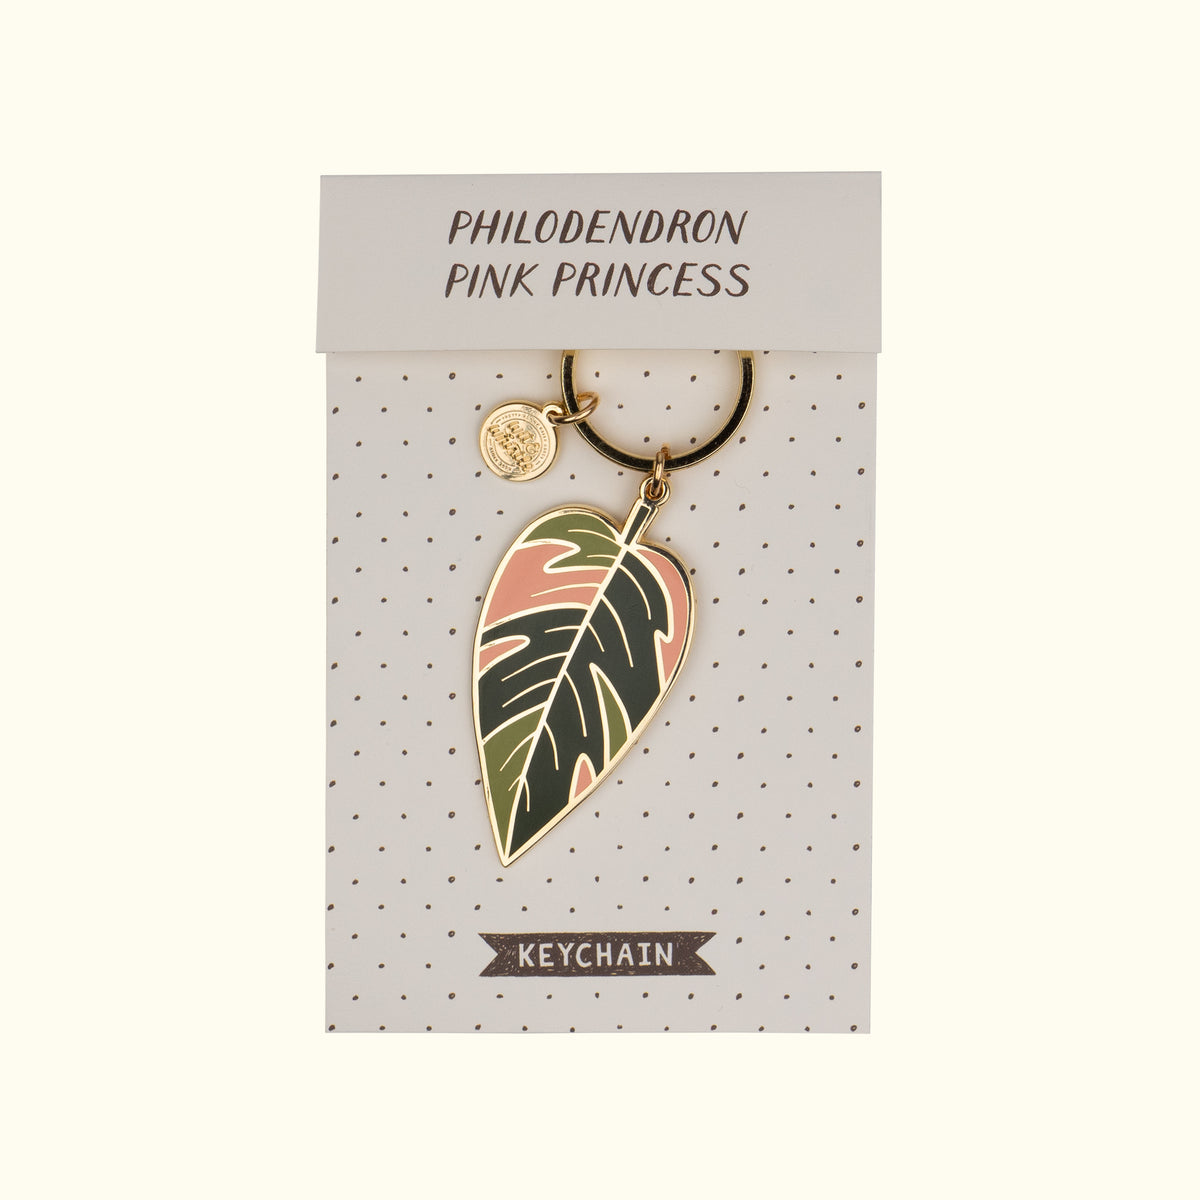 Philodendron Pink Princess Enamel Keychain